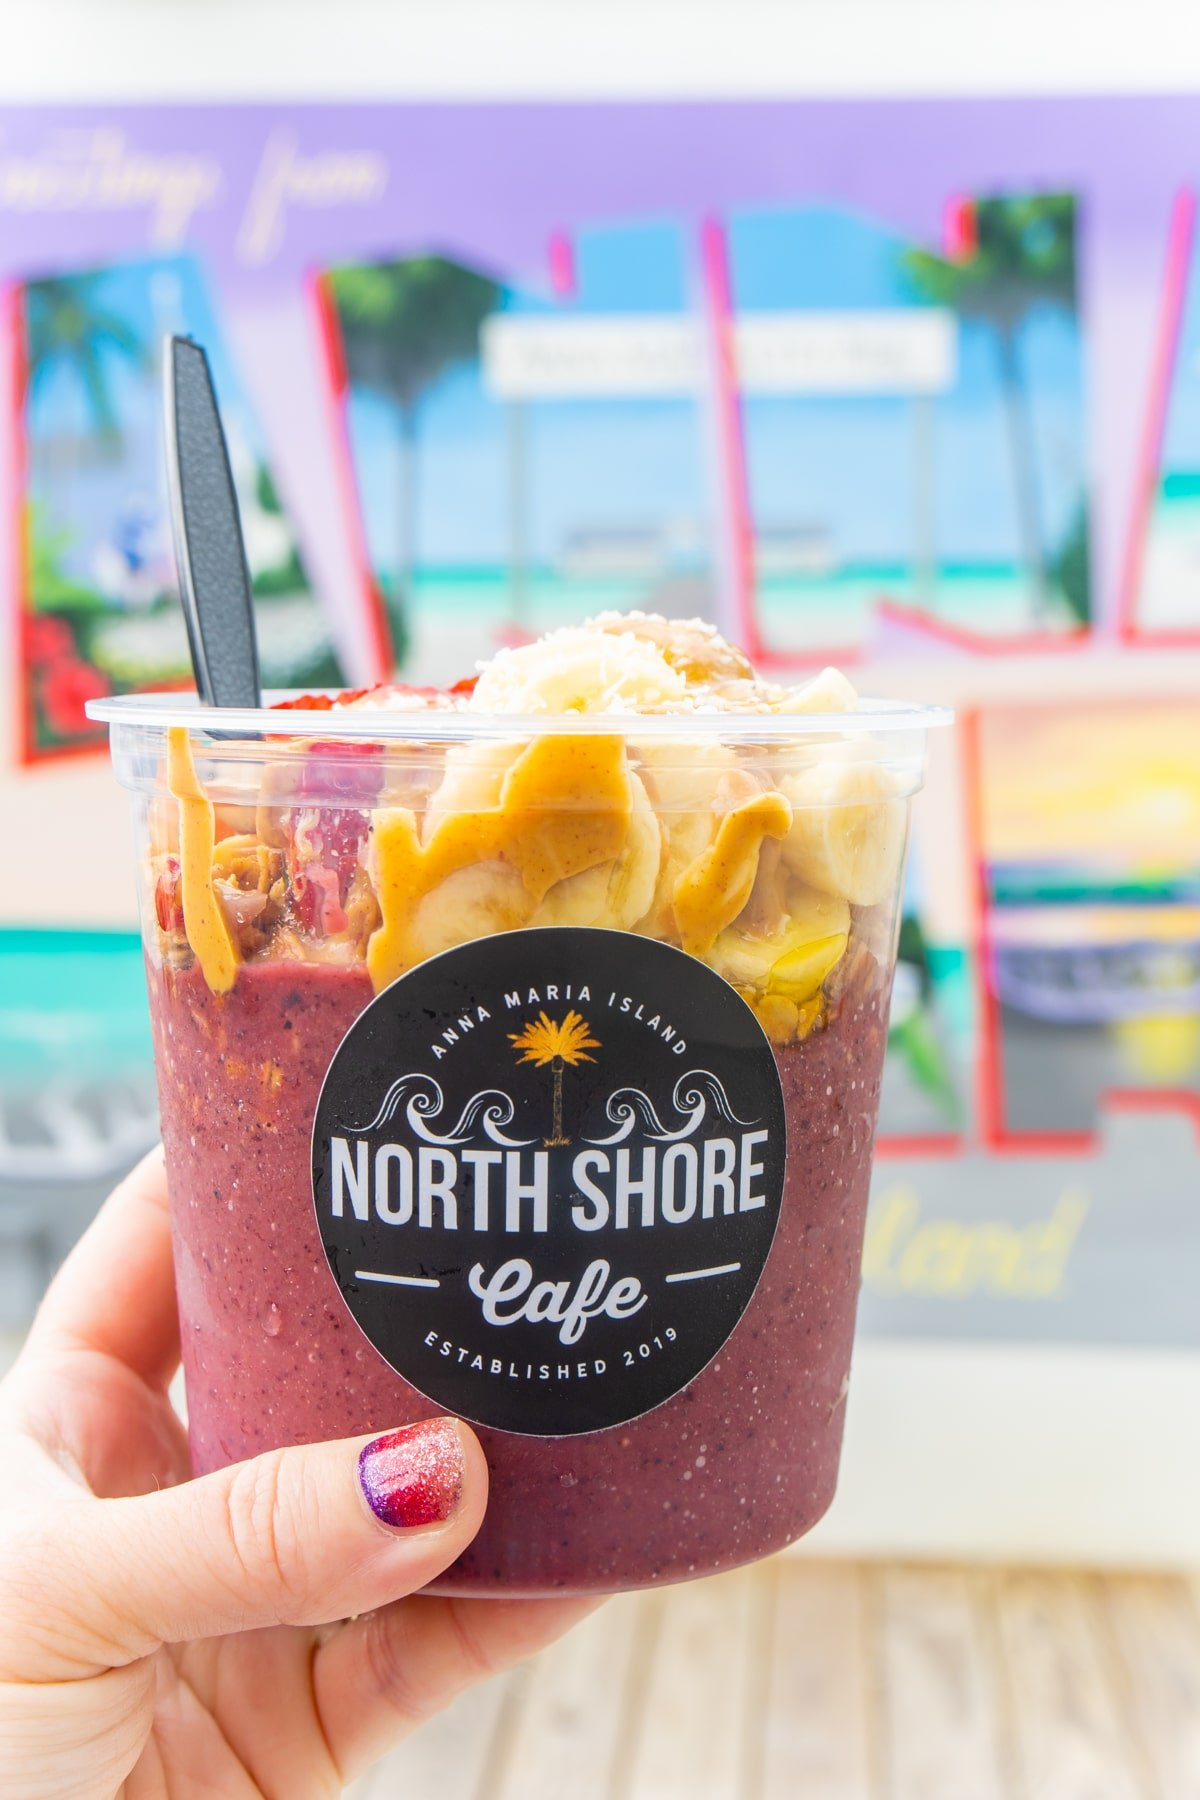 Acai bowl being held by a woman's hand